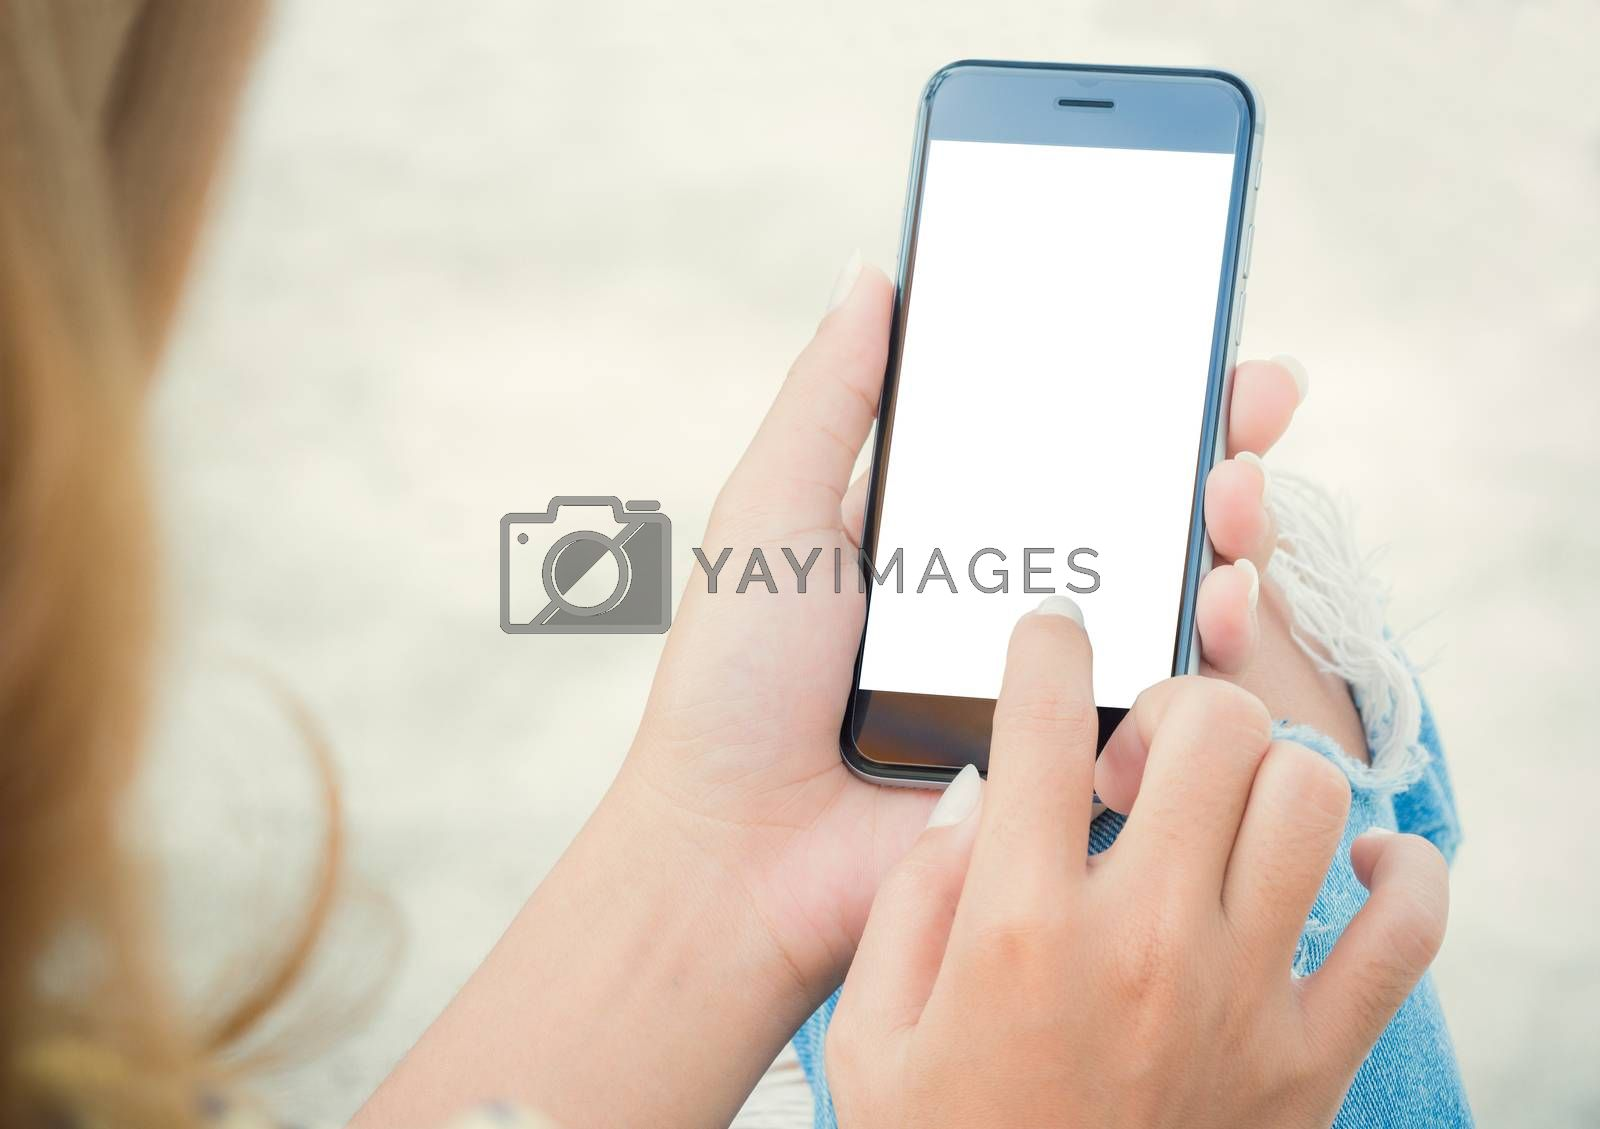 Royalty free image of closeup women using phone from back view by blackzheep